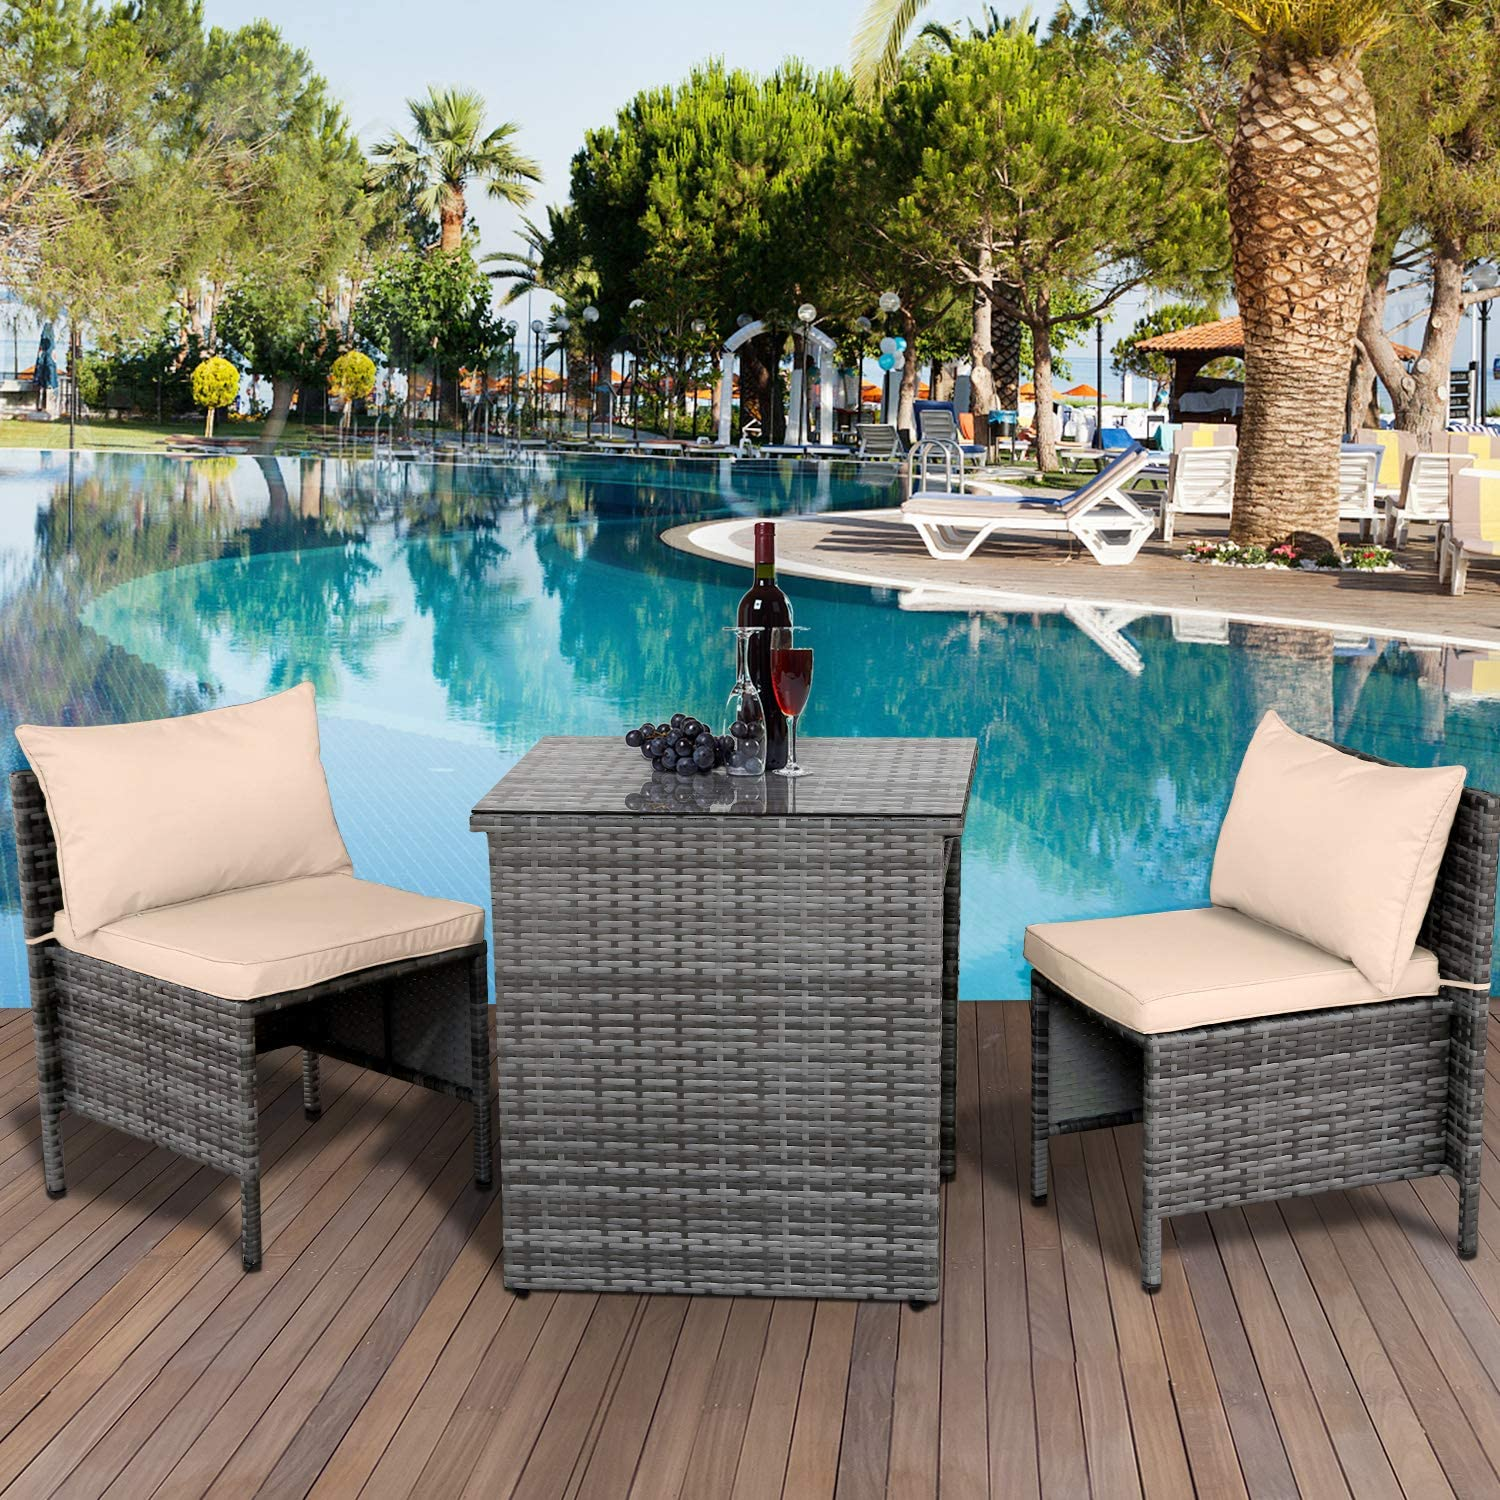 Valita 3 Piece Outdoor PE Rattan Furniture Bistro Table And Chairs Set